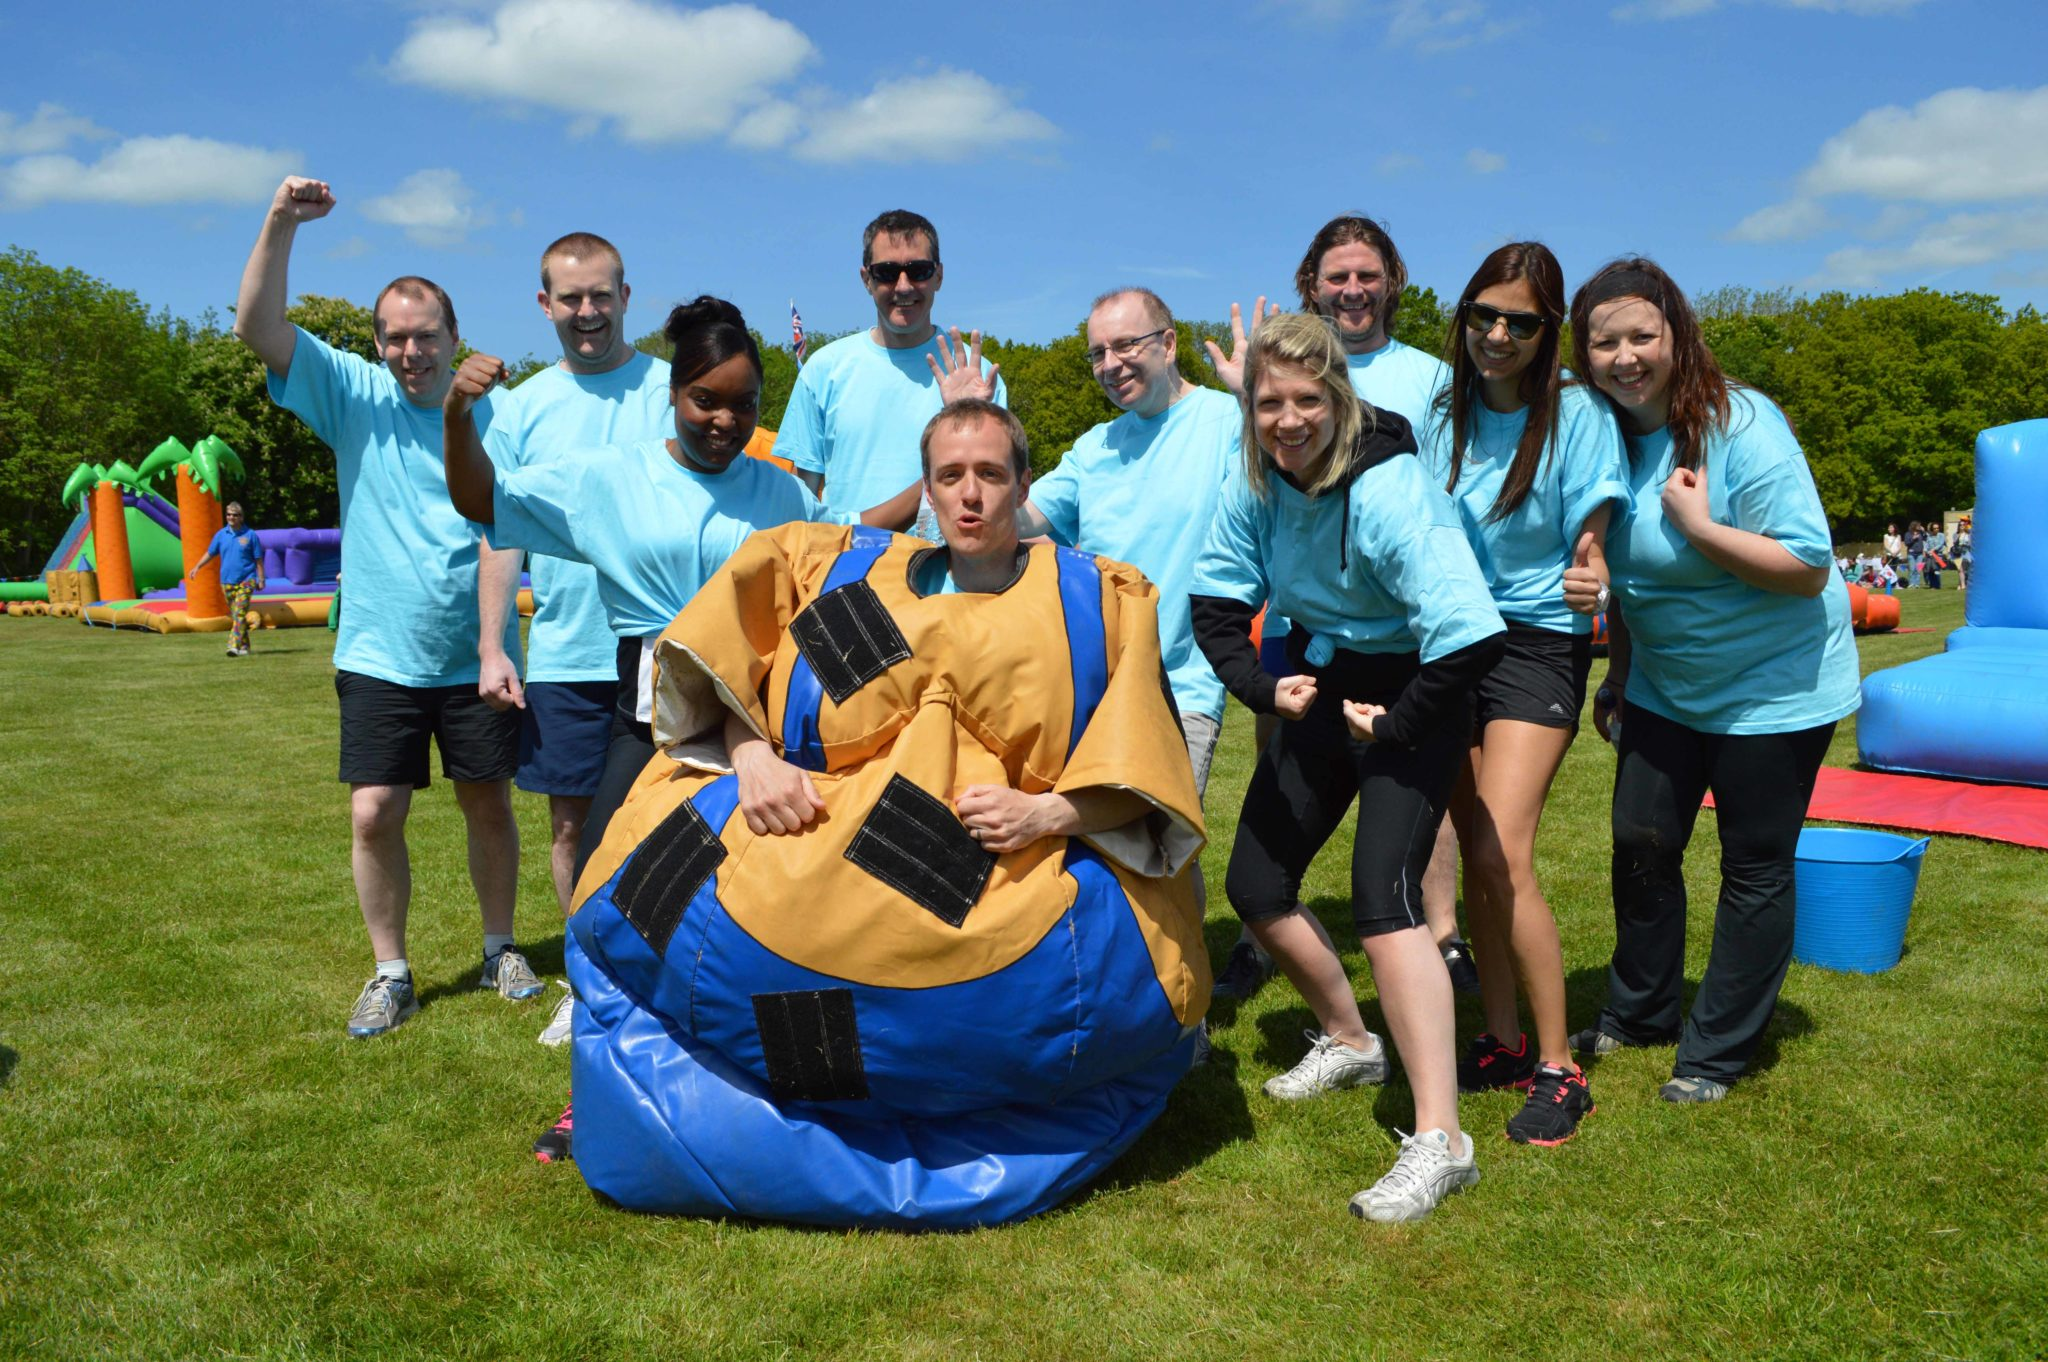 Outdoor Team Building Activities Accolade Corporate Events